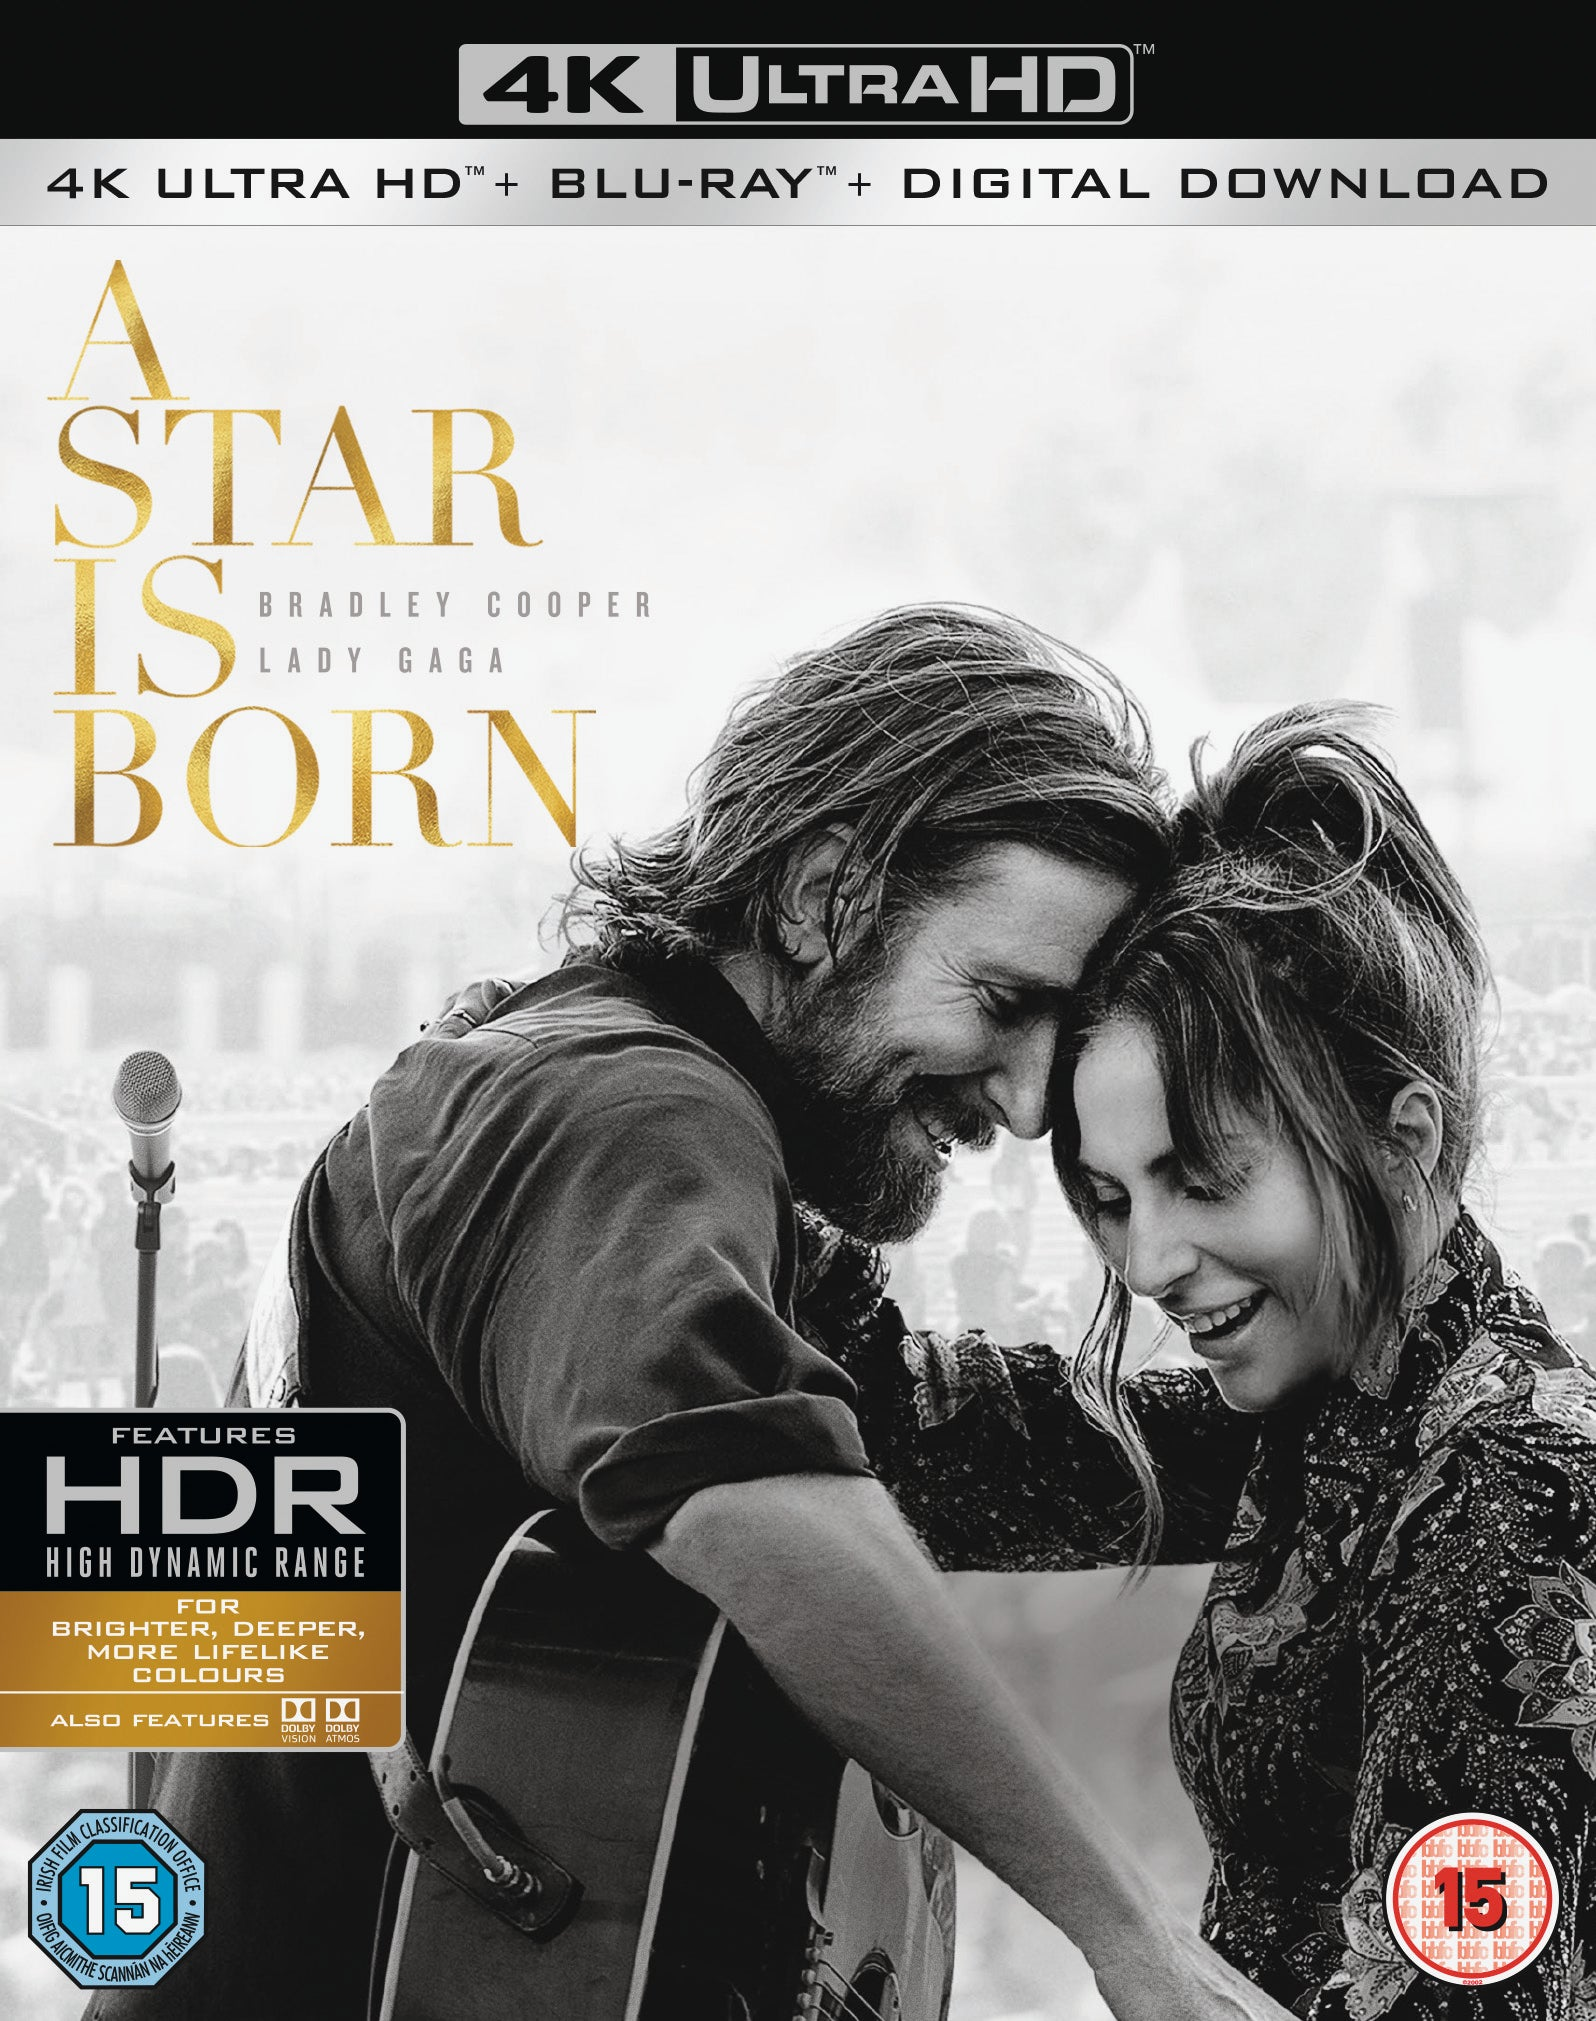 A Star Is Born - Bradley Cooper [4K UHD]